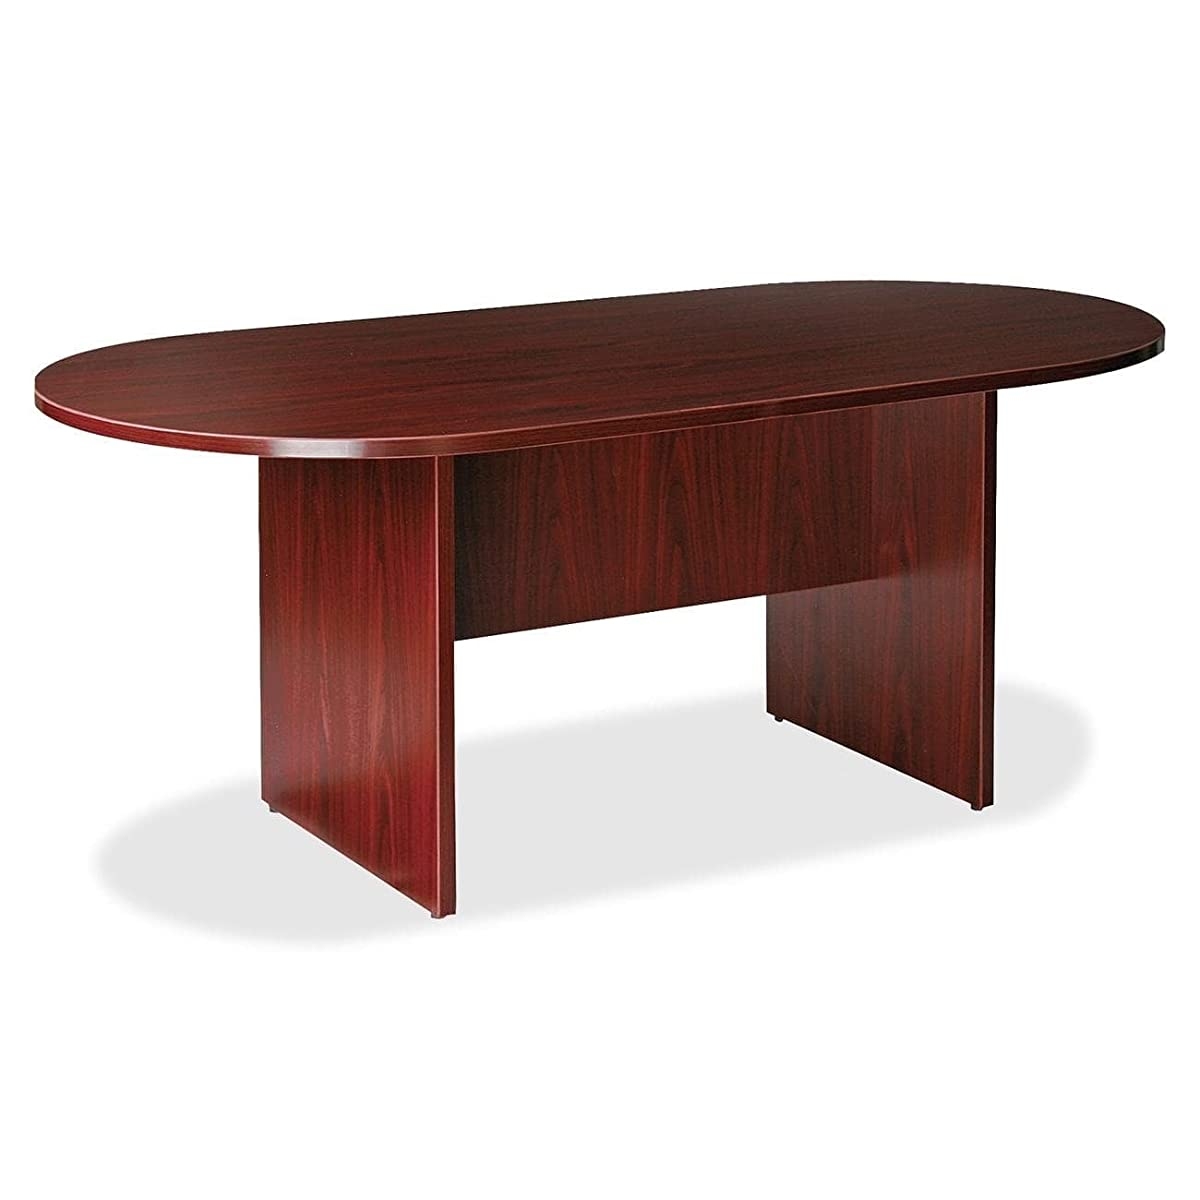 Charming Oval Conference Table, Provides Ample Open Surface to Work, Sturdy and Long Lasting Sturdy Wood Construction, Brings a Polished Look to The Room, Mahogany Finish